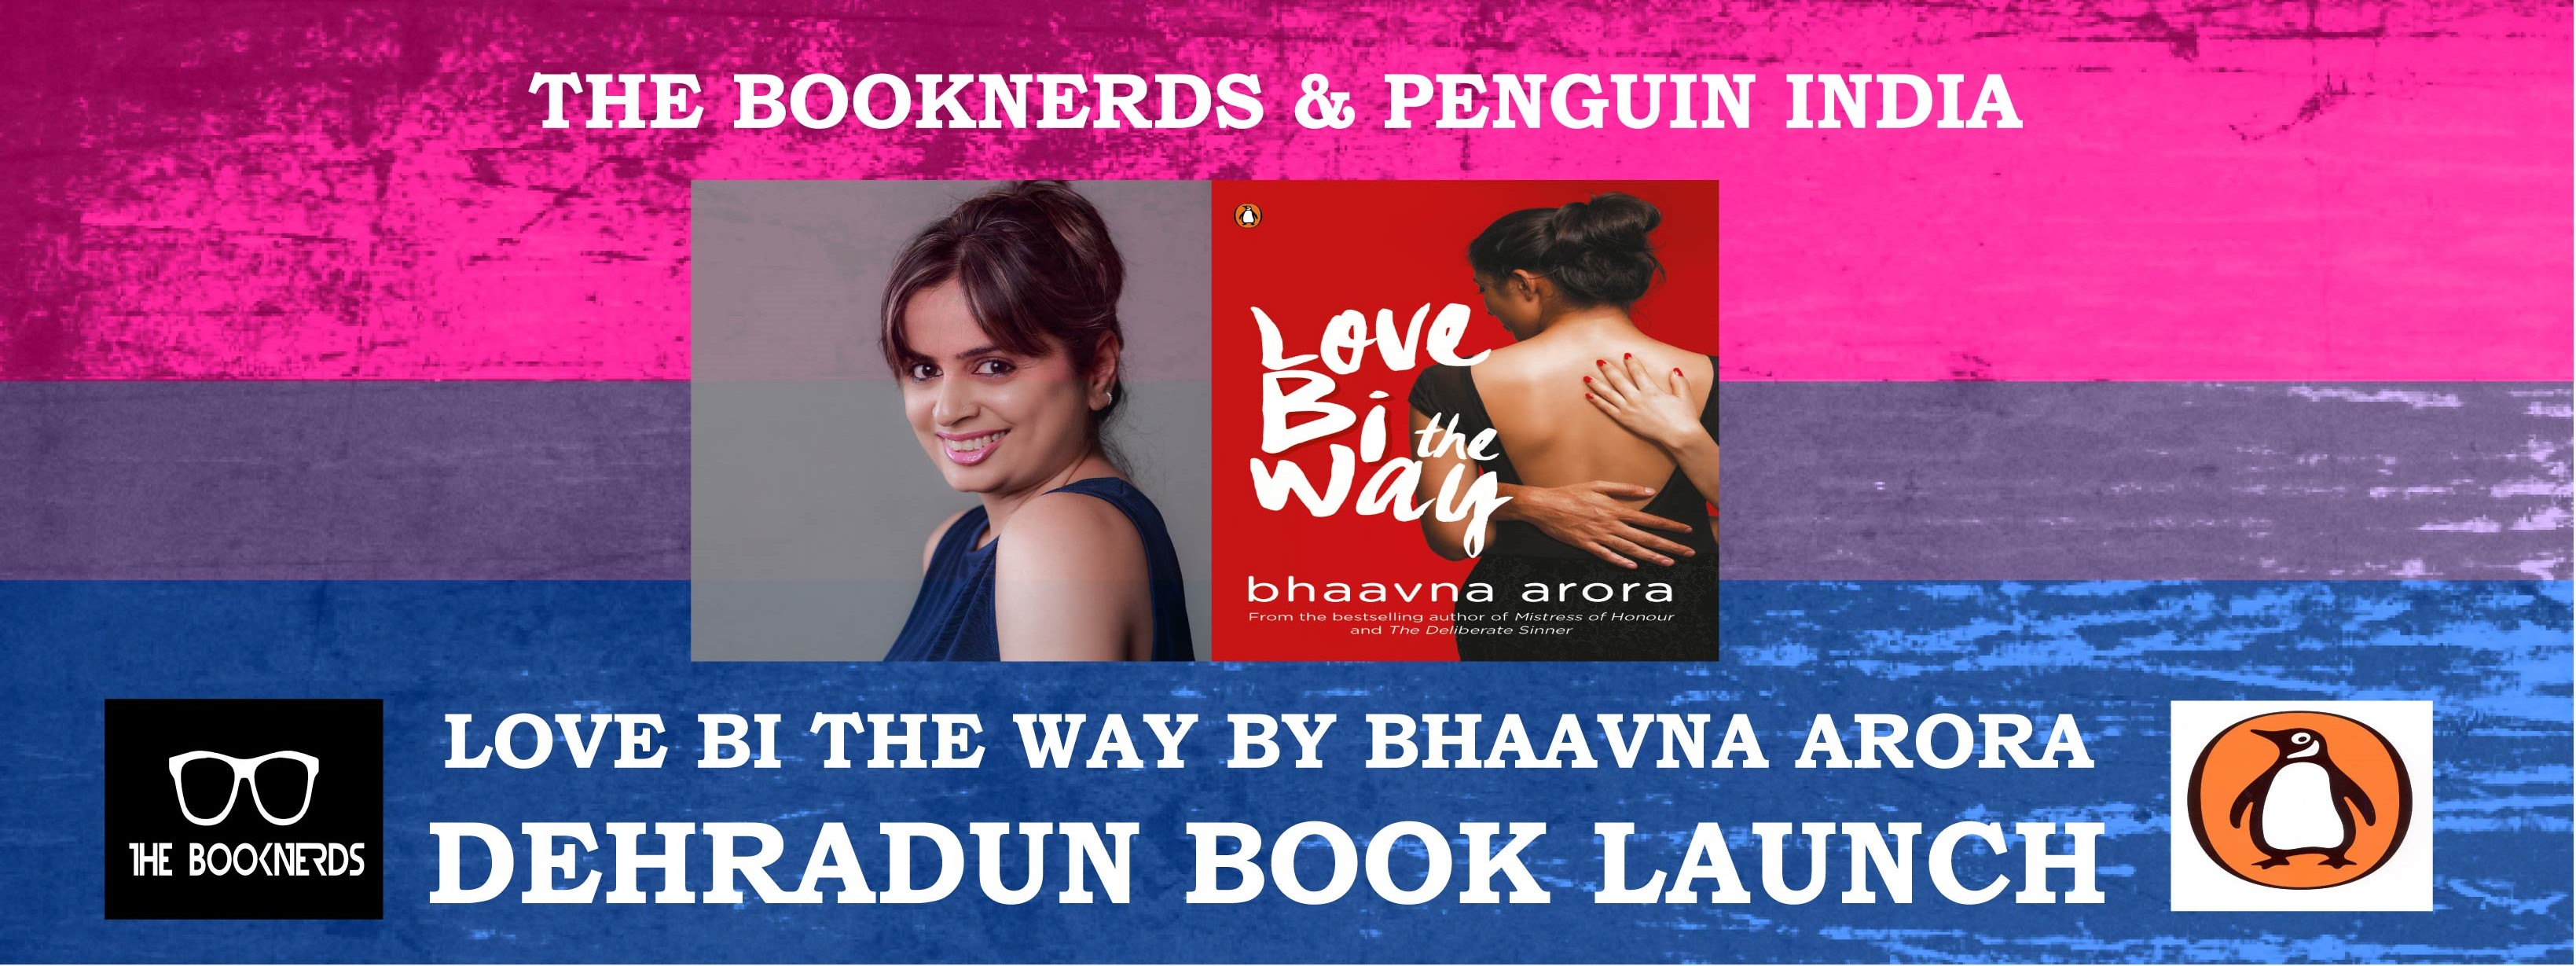 Hangout 32.0 Book Launch:Love Bi The Way by Bhaavna Arora